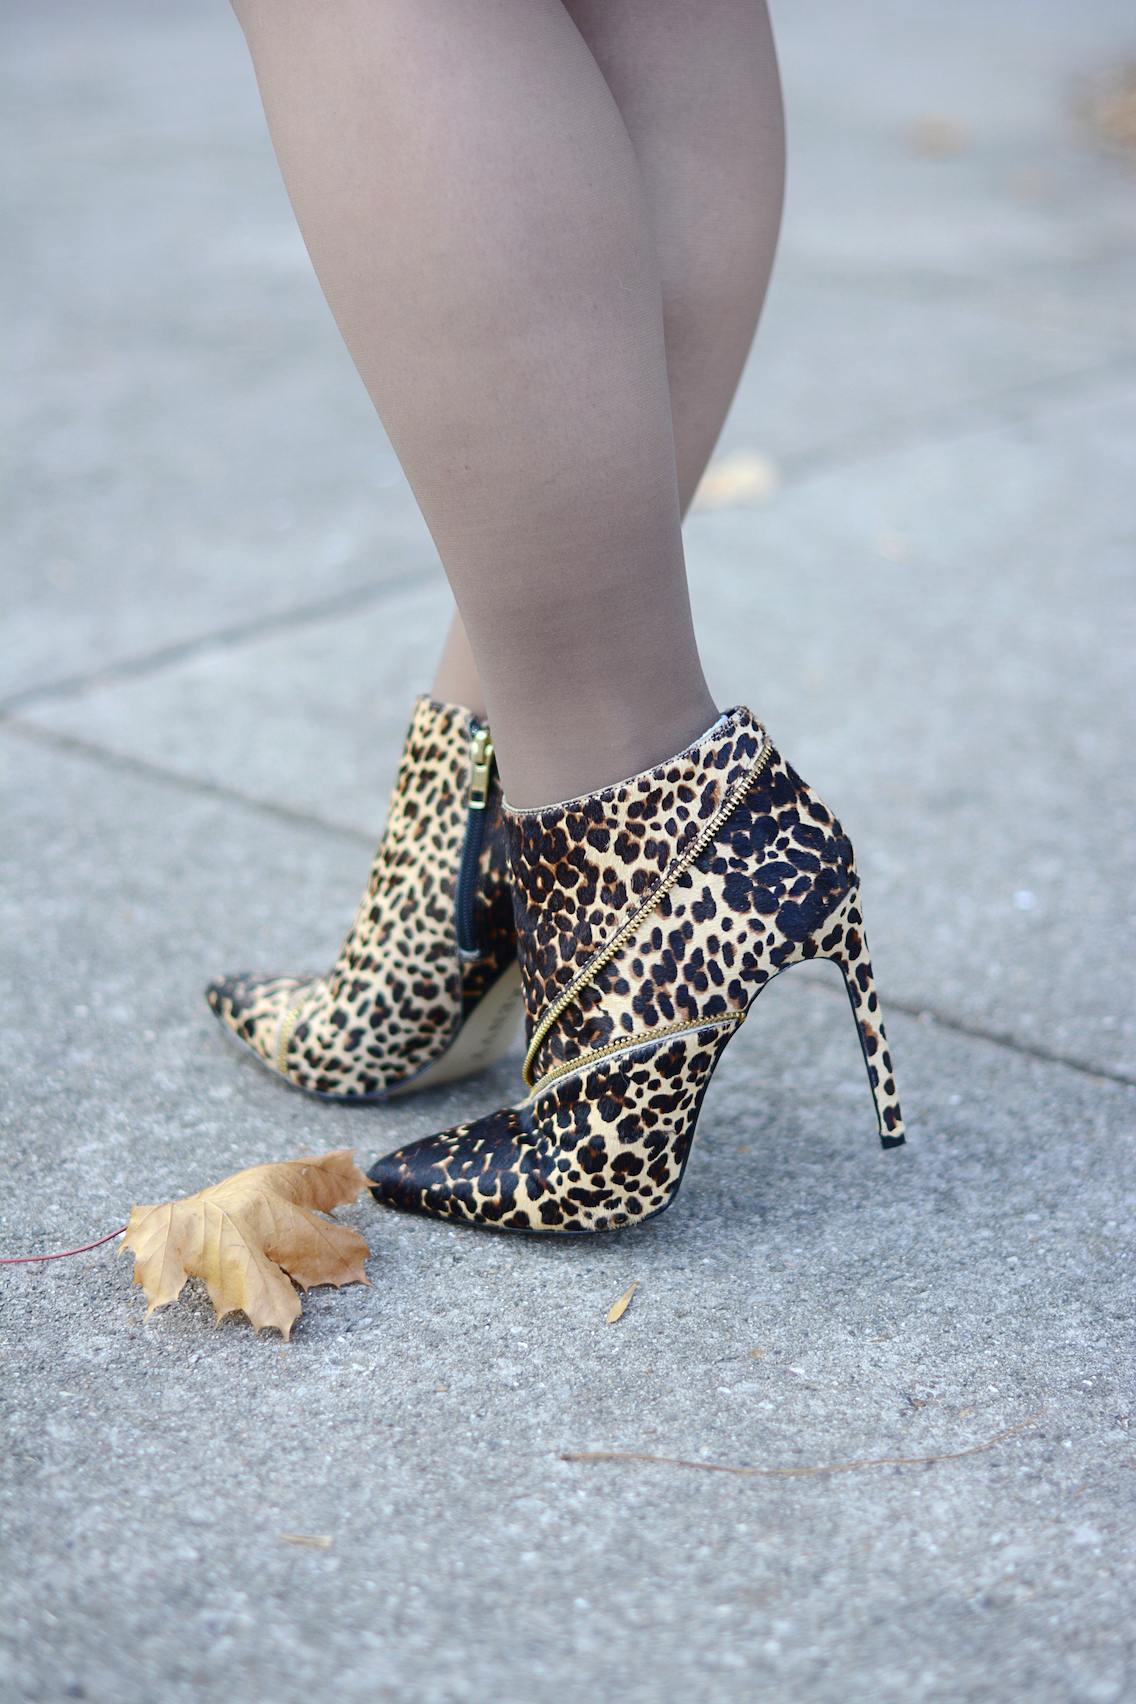 Barbour Bonnington Forever 21 Cheetah Booties